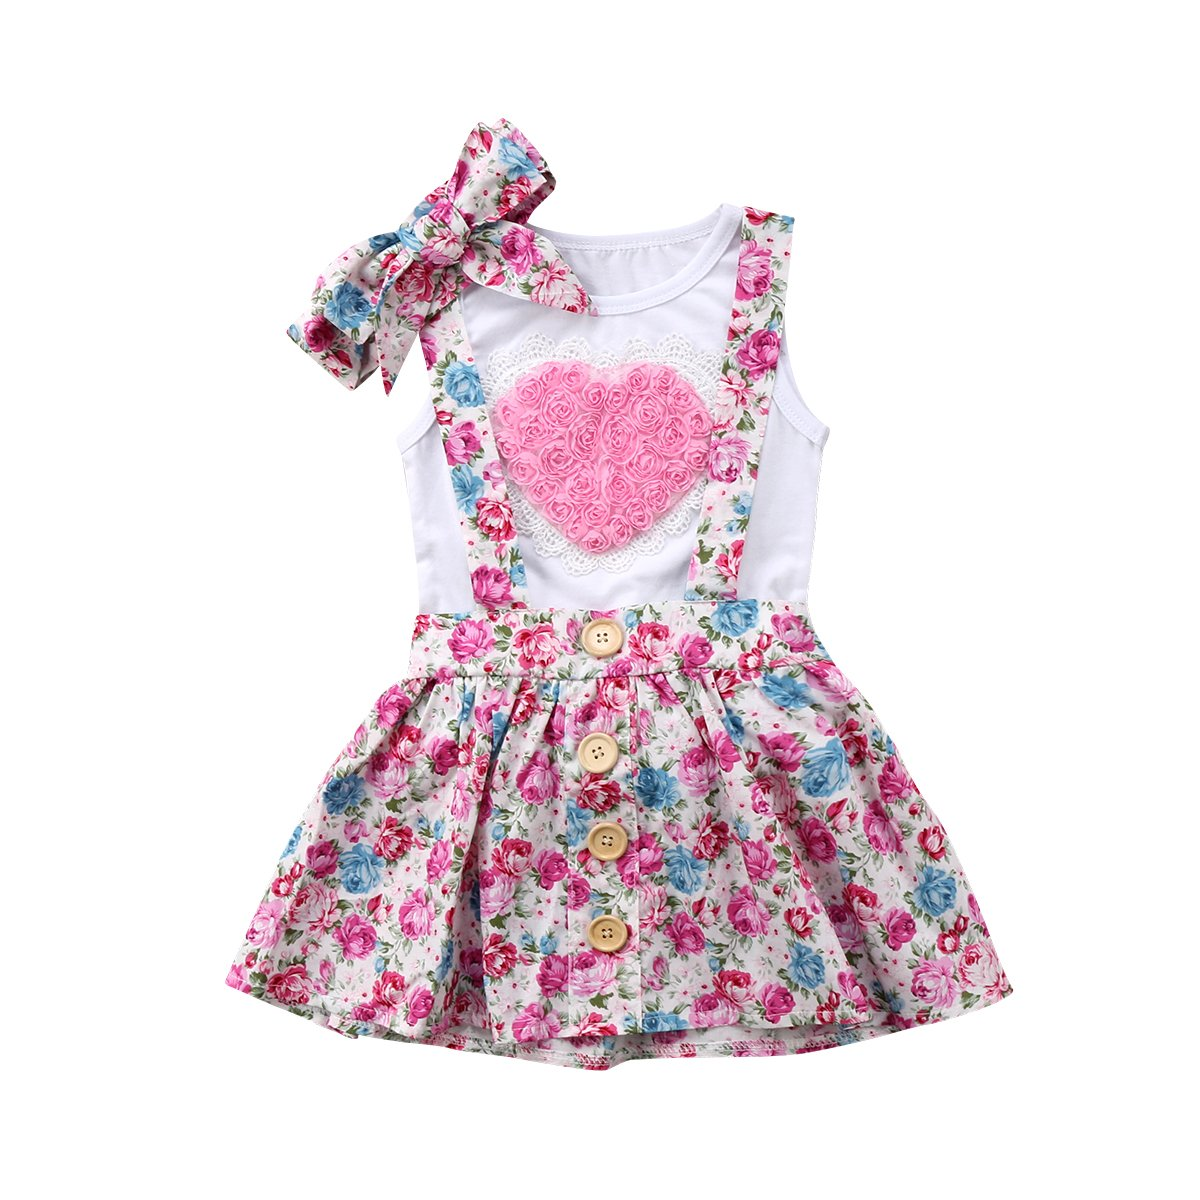 Toddler Baby Girls Sister 3D Floral Heart Vest Short Ruffle Lace Dress Set with Headband 3PCS